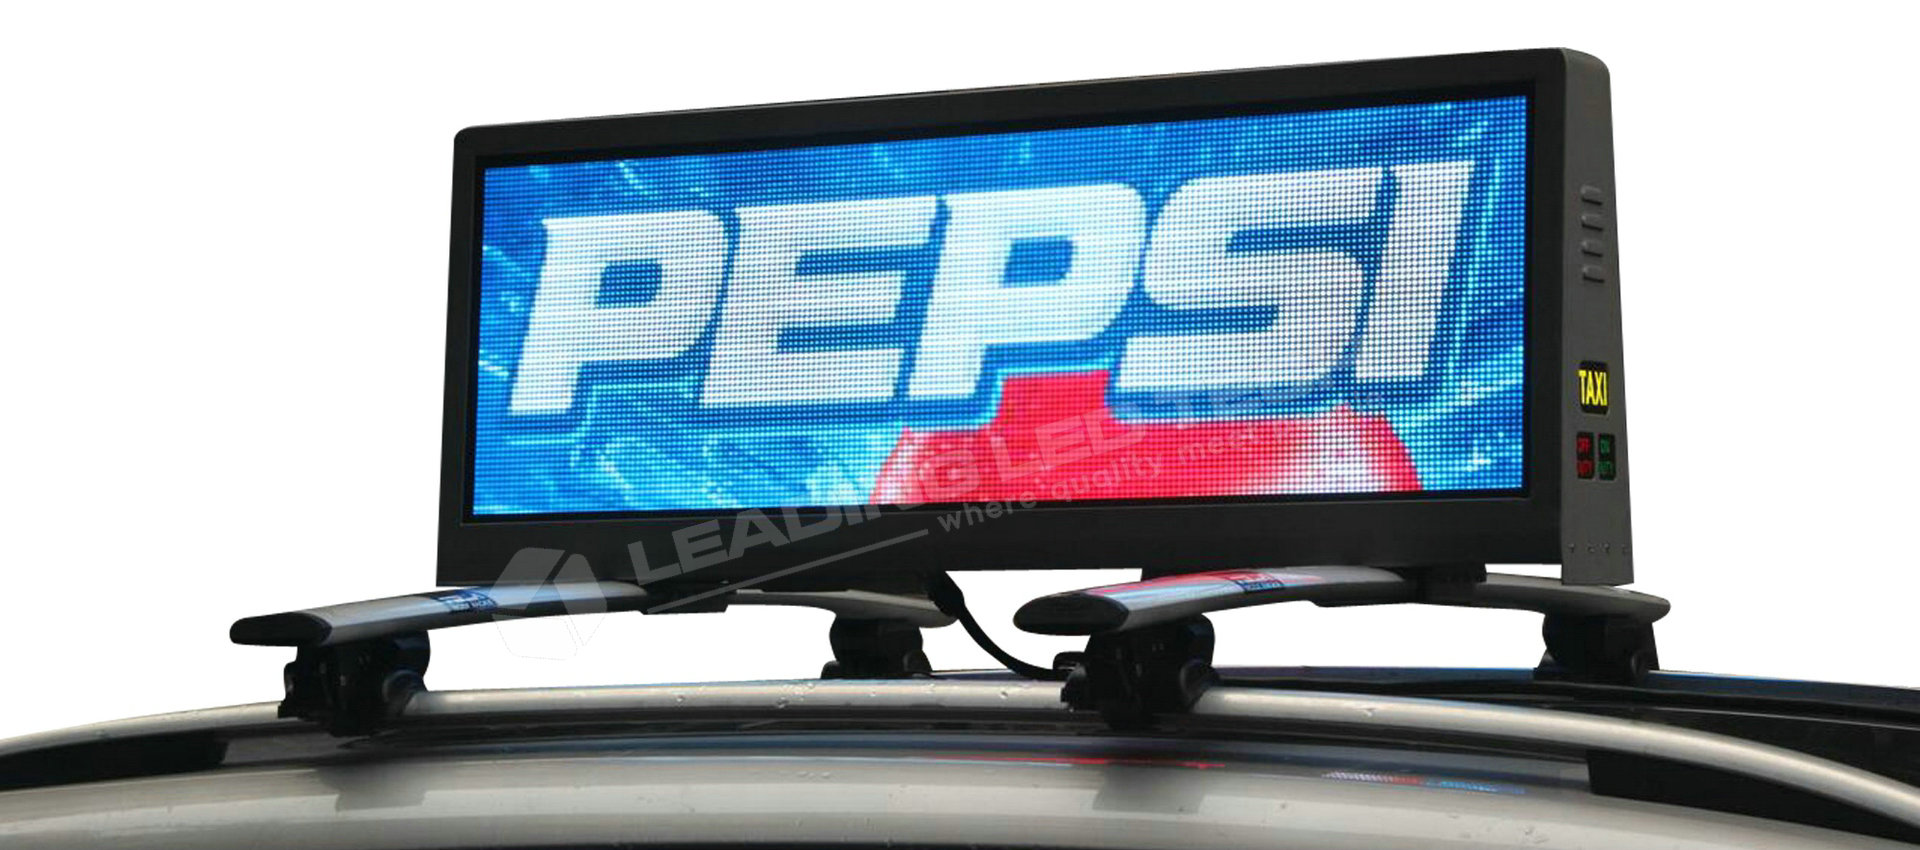 Taxi Top LED signs LT-Taxi-BV-Series-1